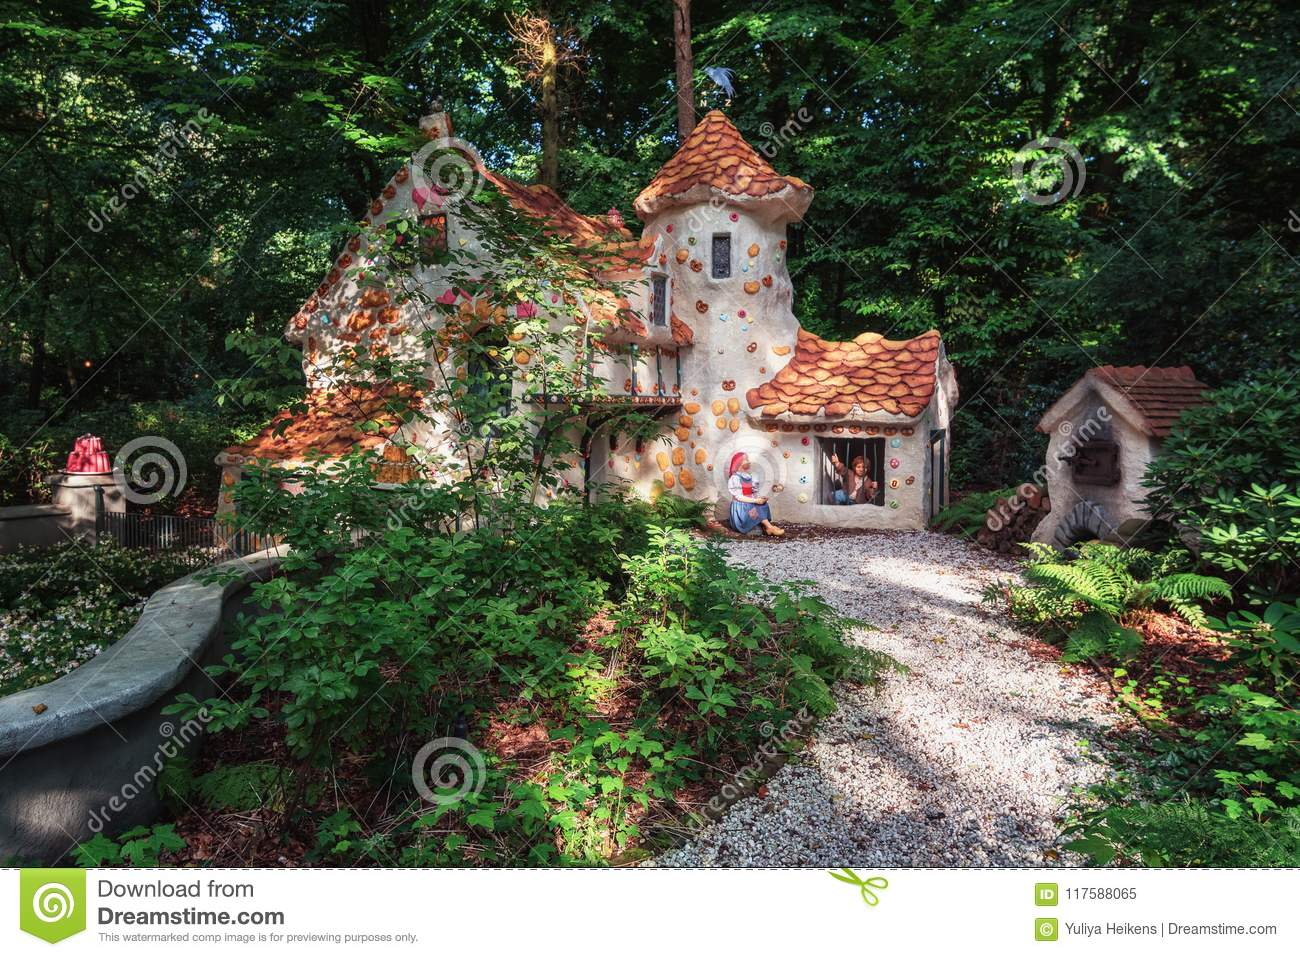 hansel and gretel pdf with pictures